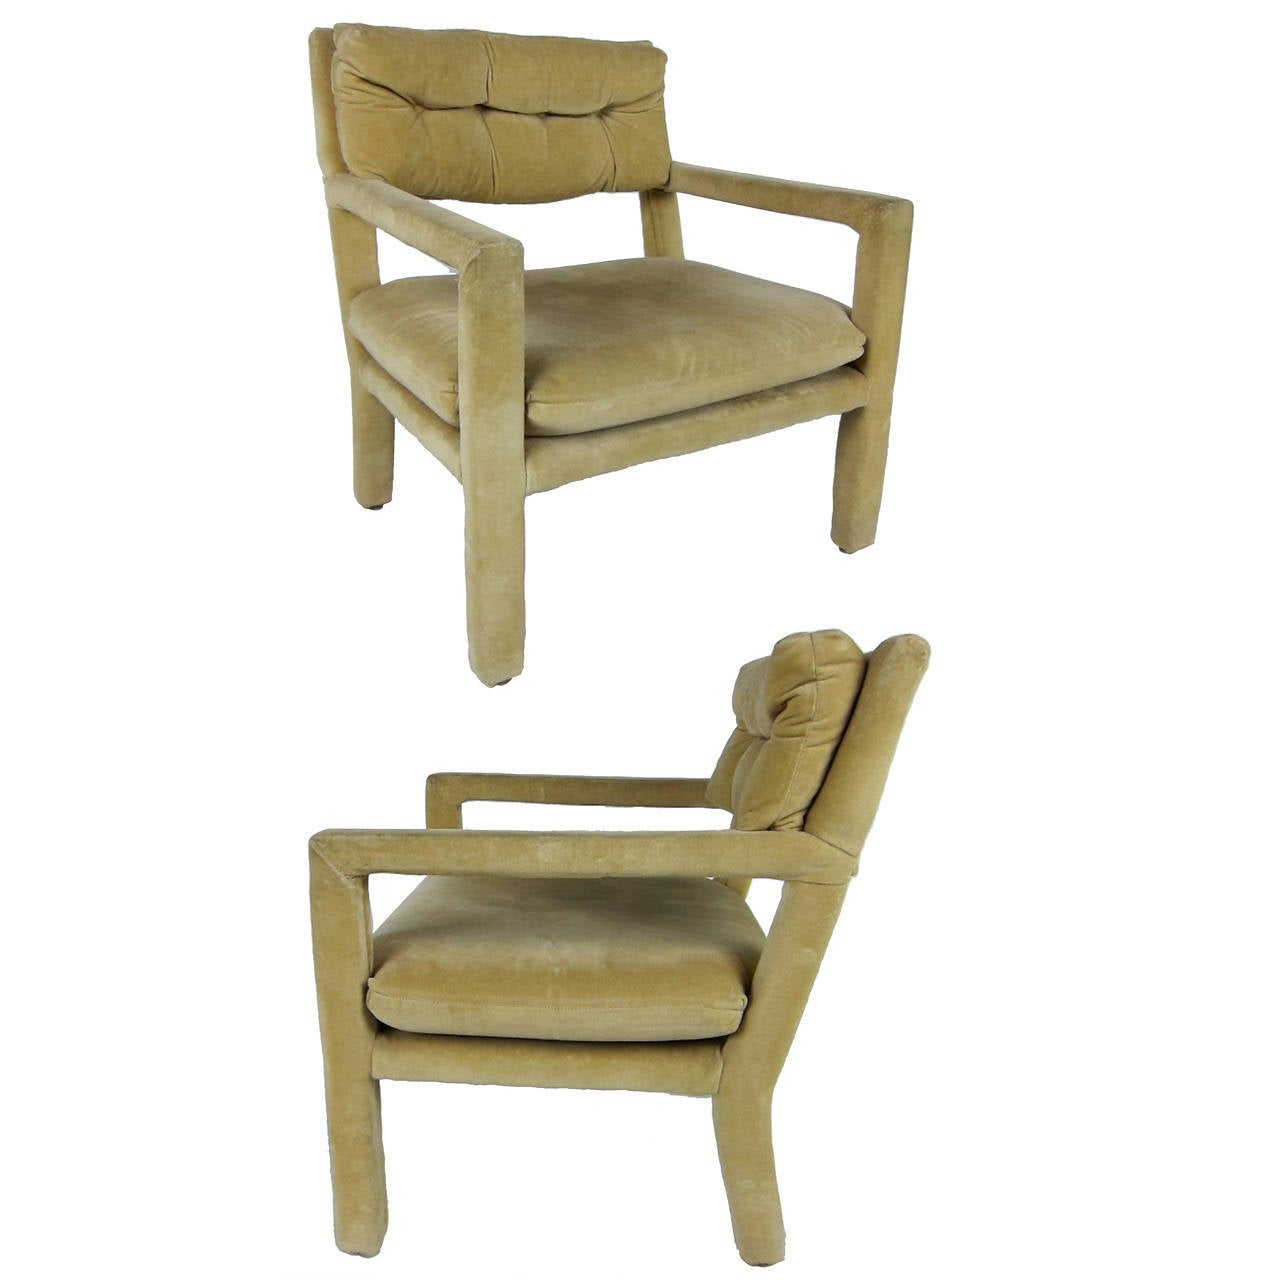 Pair of Open Arm Lounge Chairs by Milo Baughman for Directional